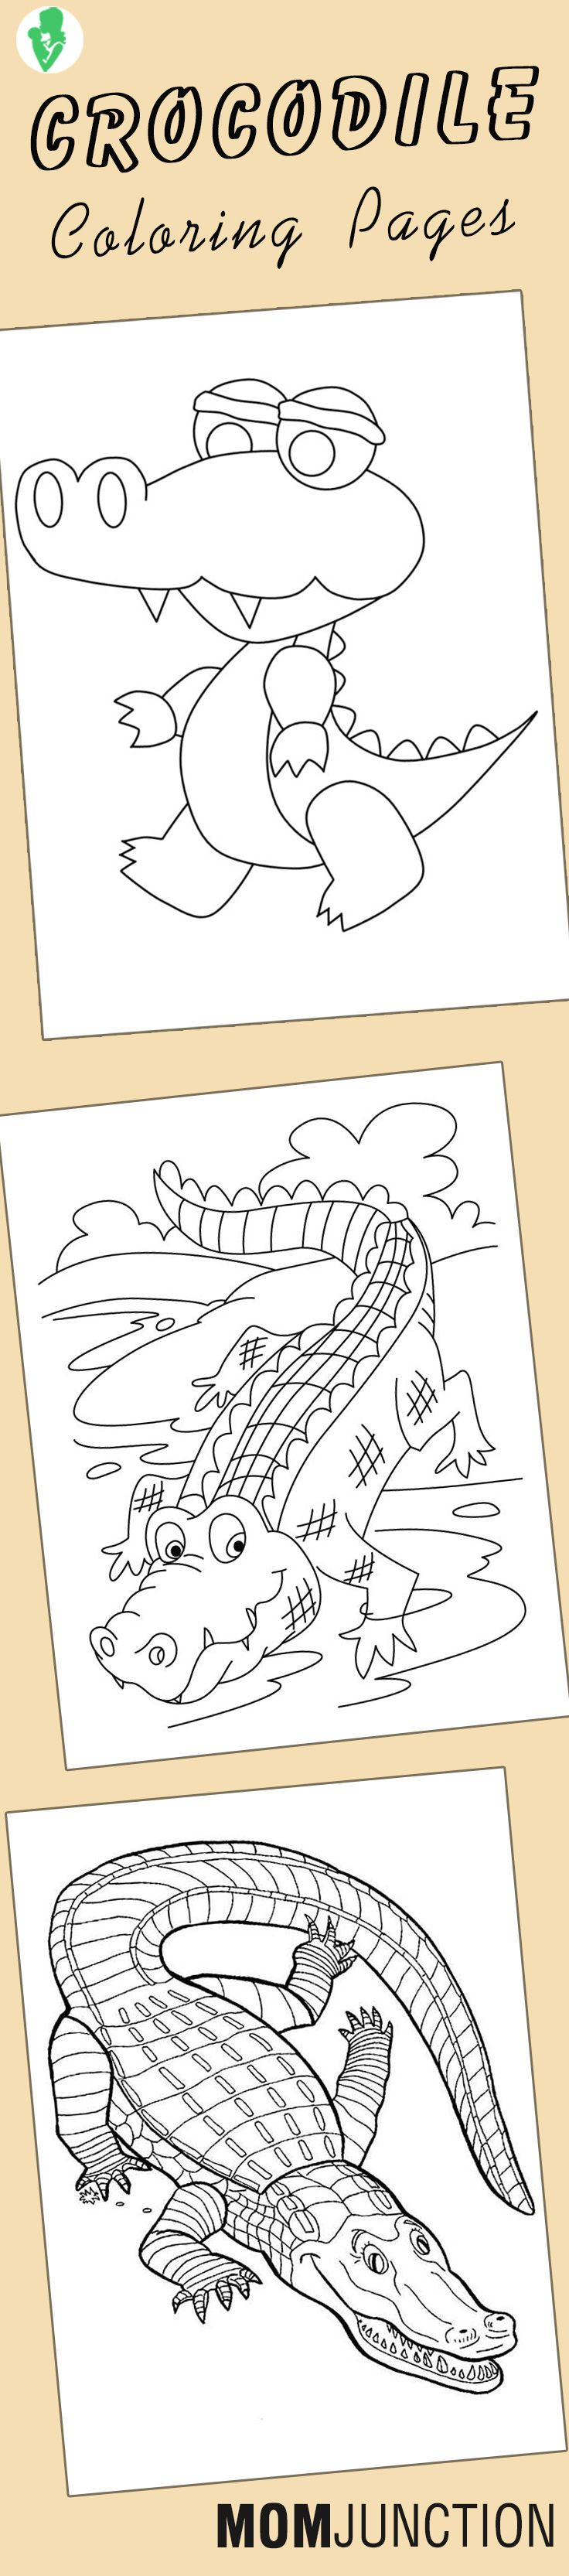 74 best coloring pages images on pinterest coloring sheets